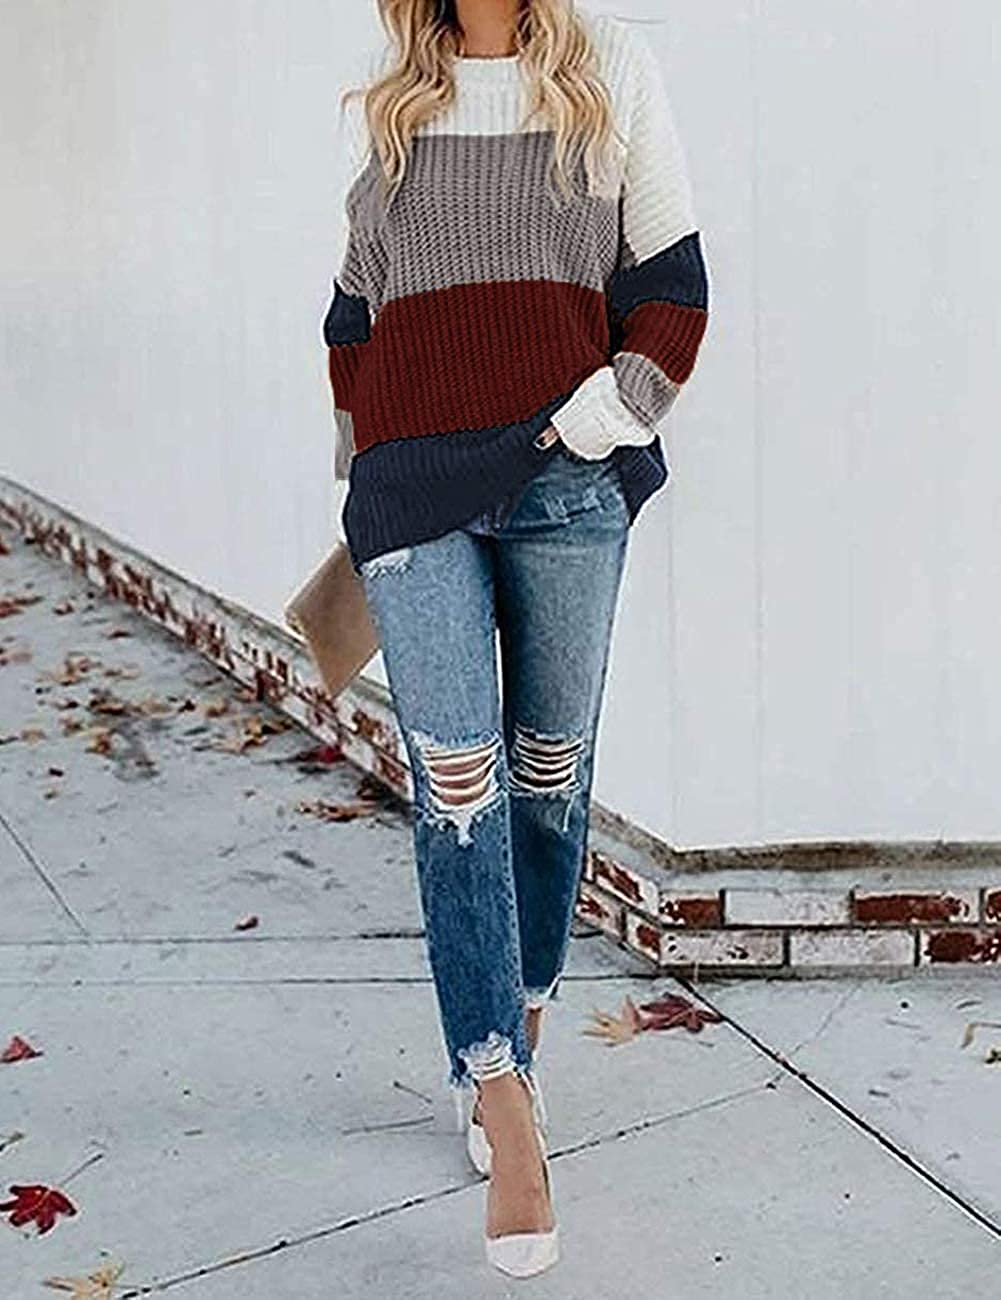 Chigant Womens Crew Neck Sweater Color Block Knit Sweater Casual Pullover Jumper Tops